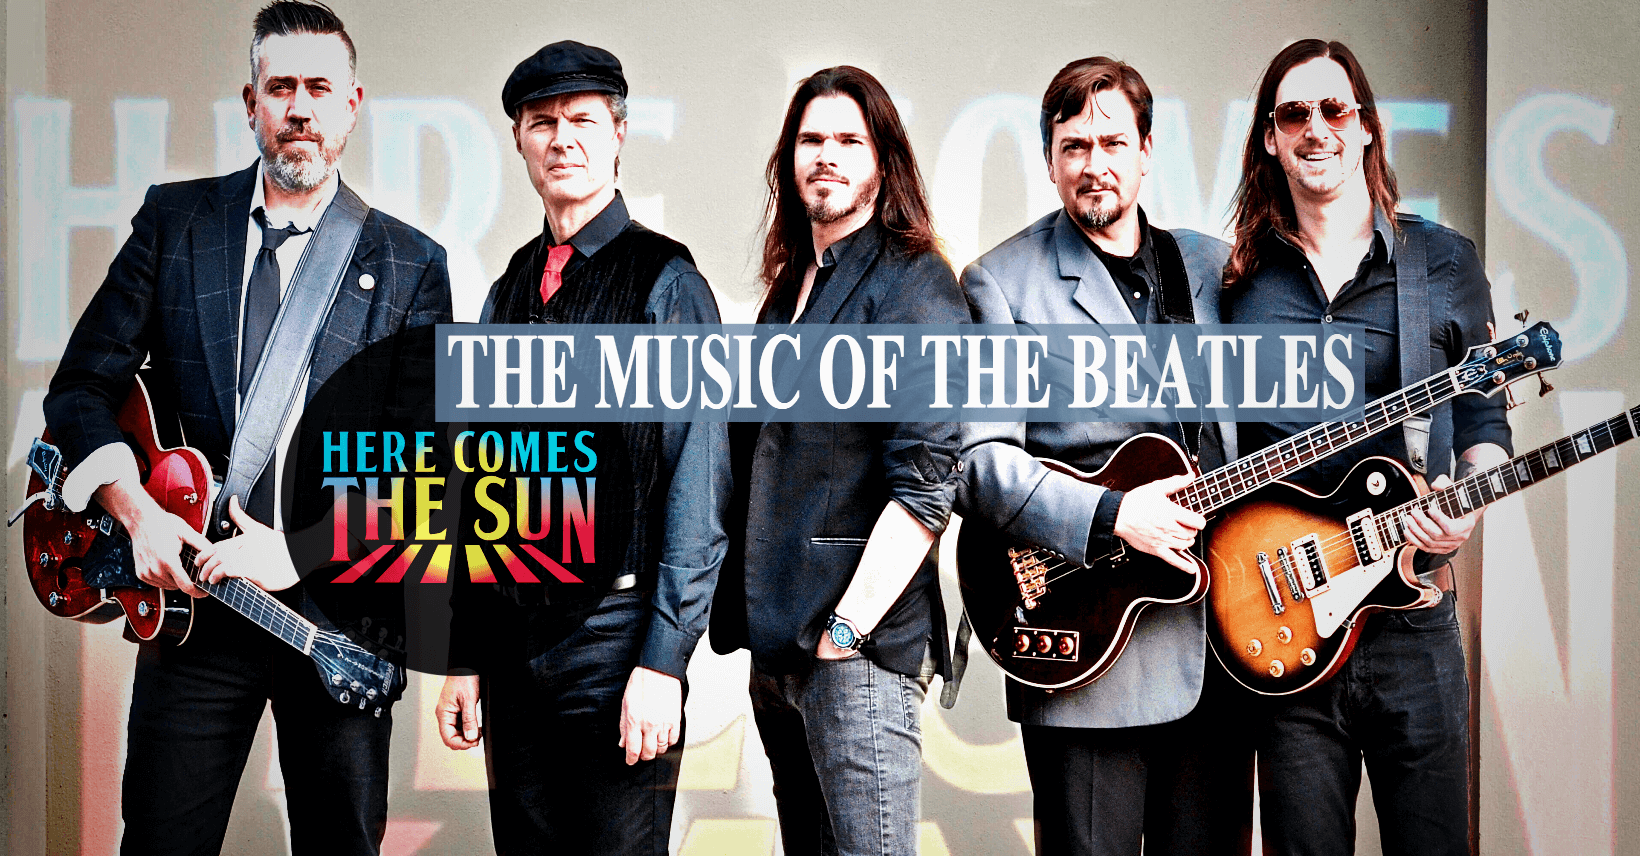 Here Comes The Sun Band members